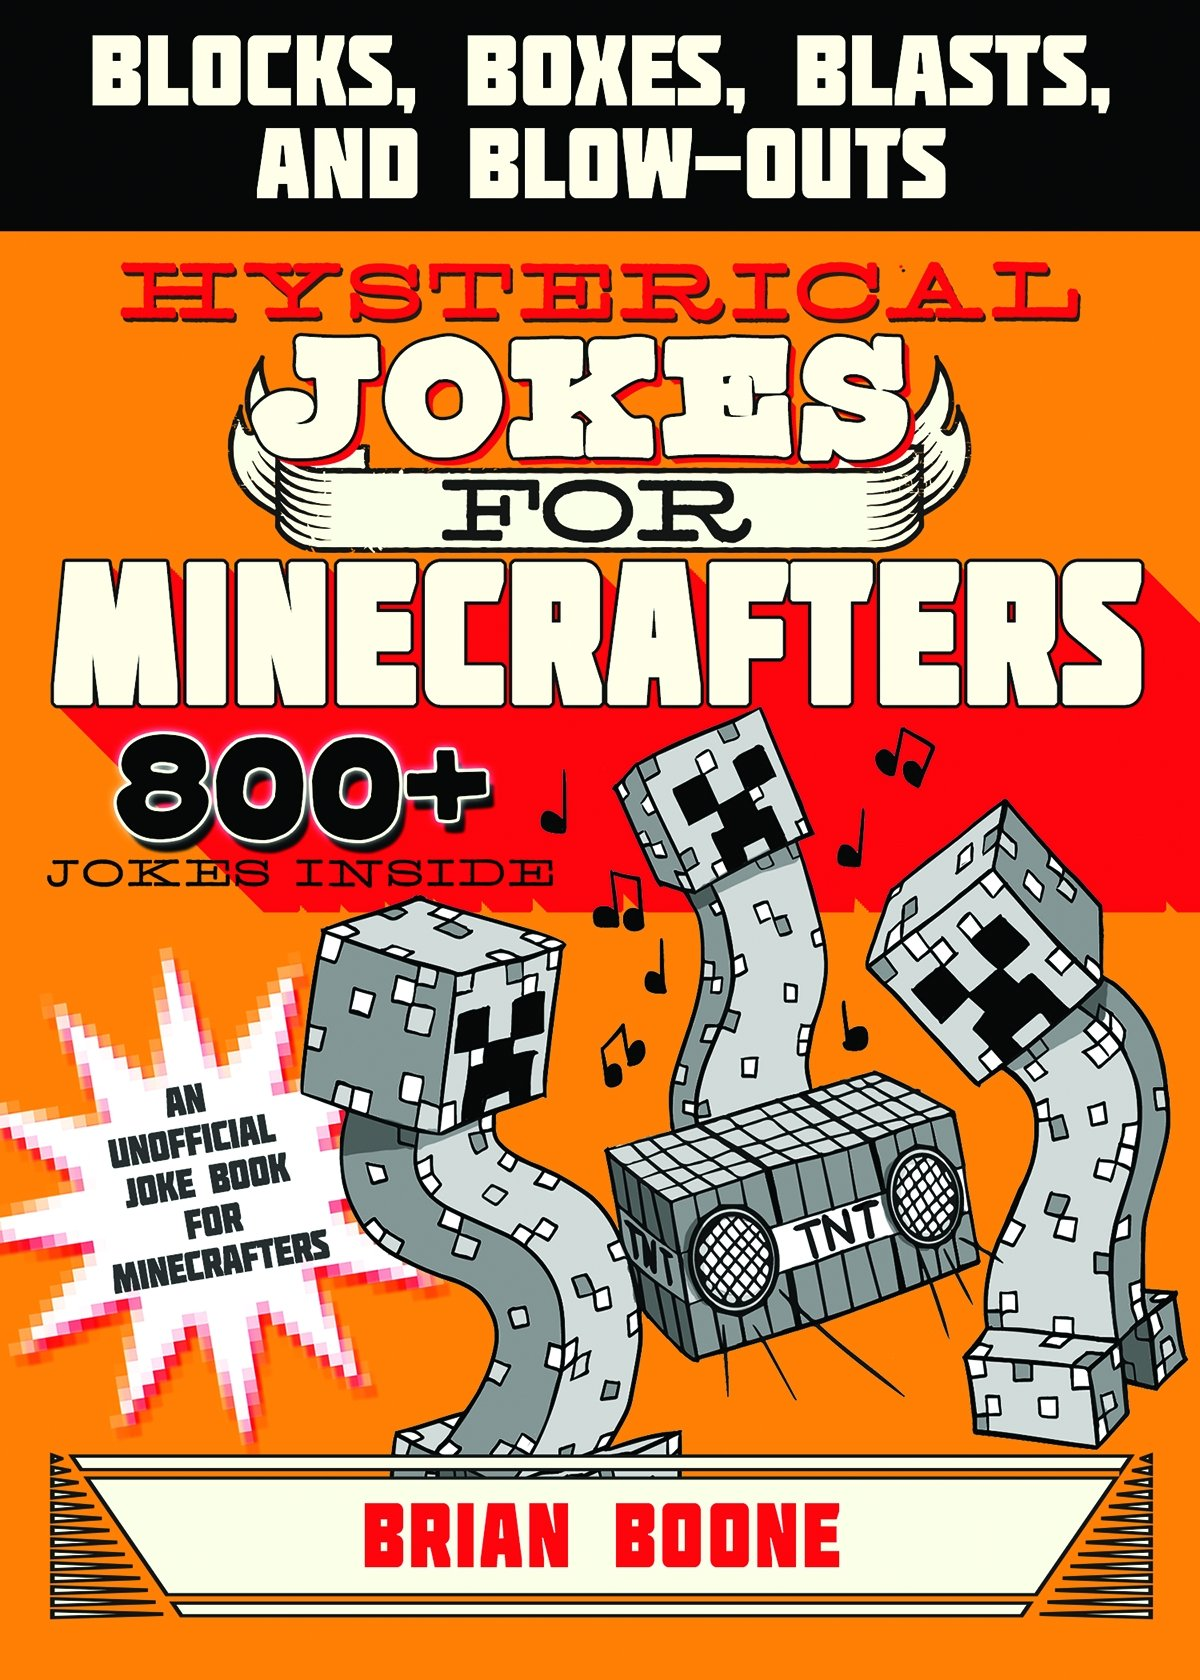 Hysterical Jokes for Minecrafters: Blocks, Boxes, Blasts, and Blow-Outs pdf